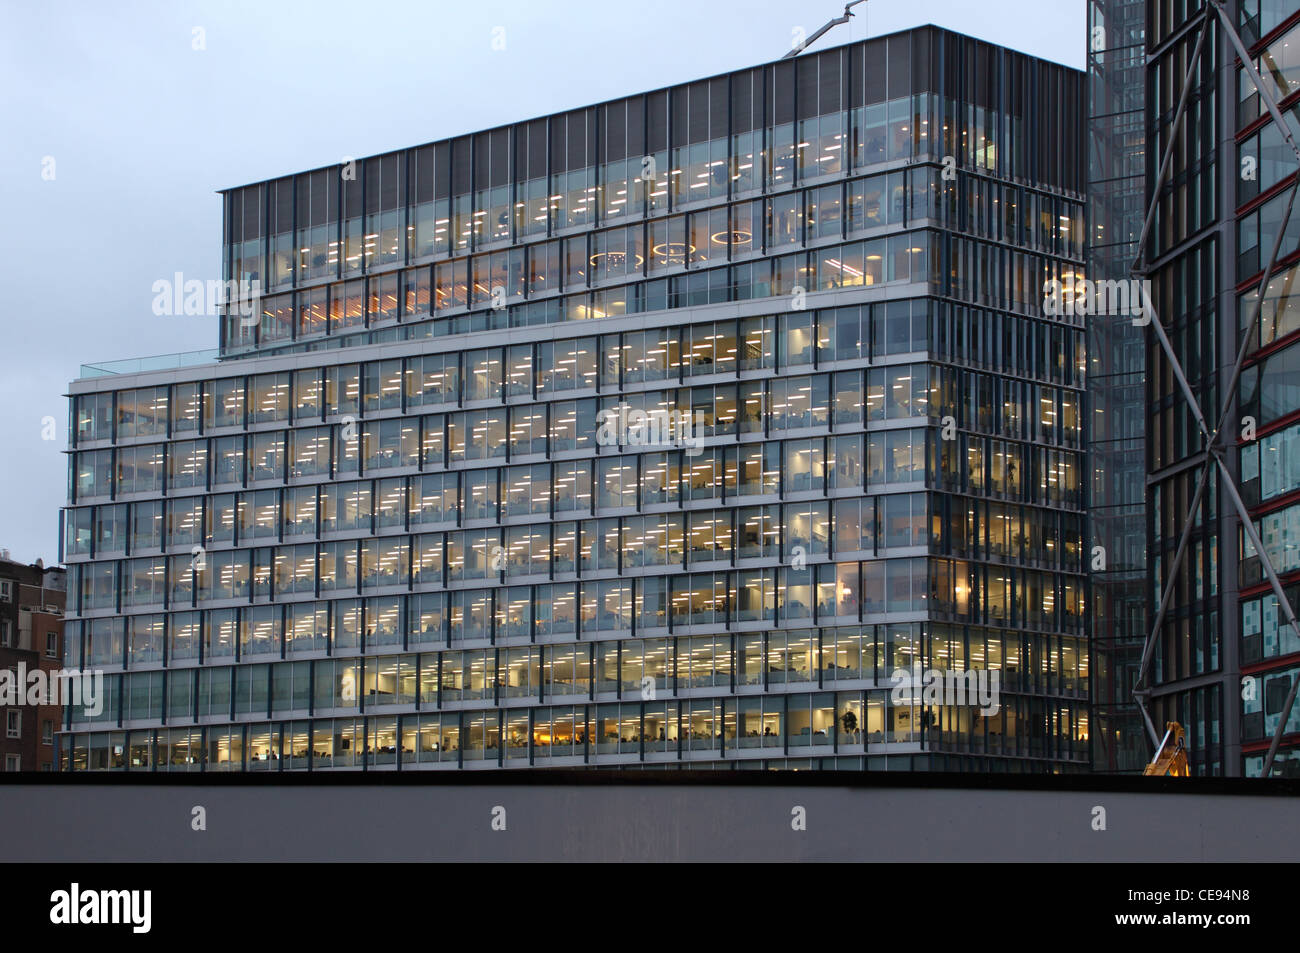 office glass windows. Lit Up Office Building With Large Glass Windows In The Evening Or Dusk. Can Be Cropped, Say To Show Only Other Crops